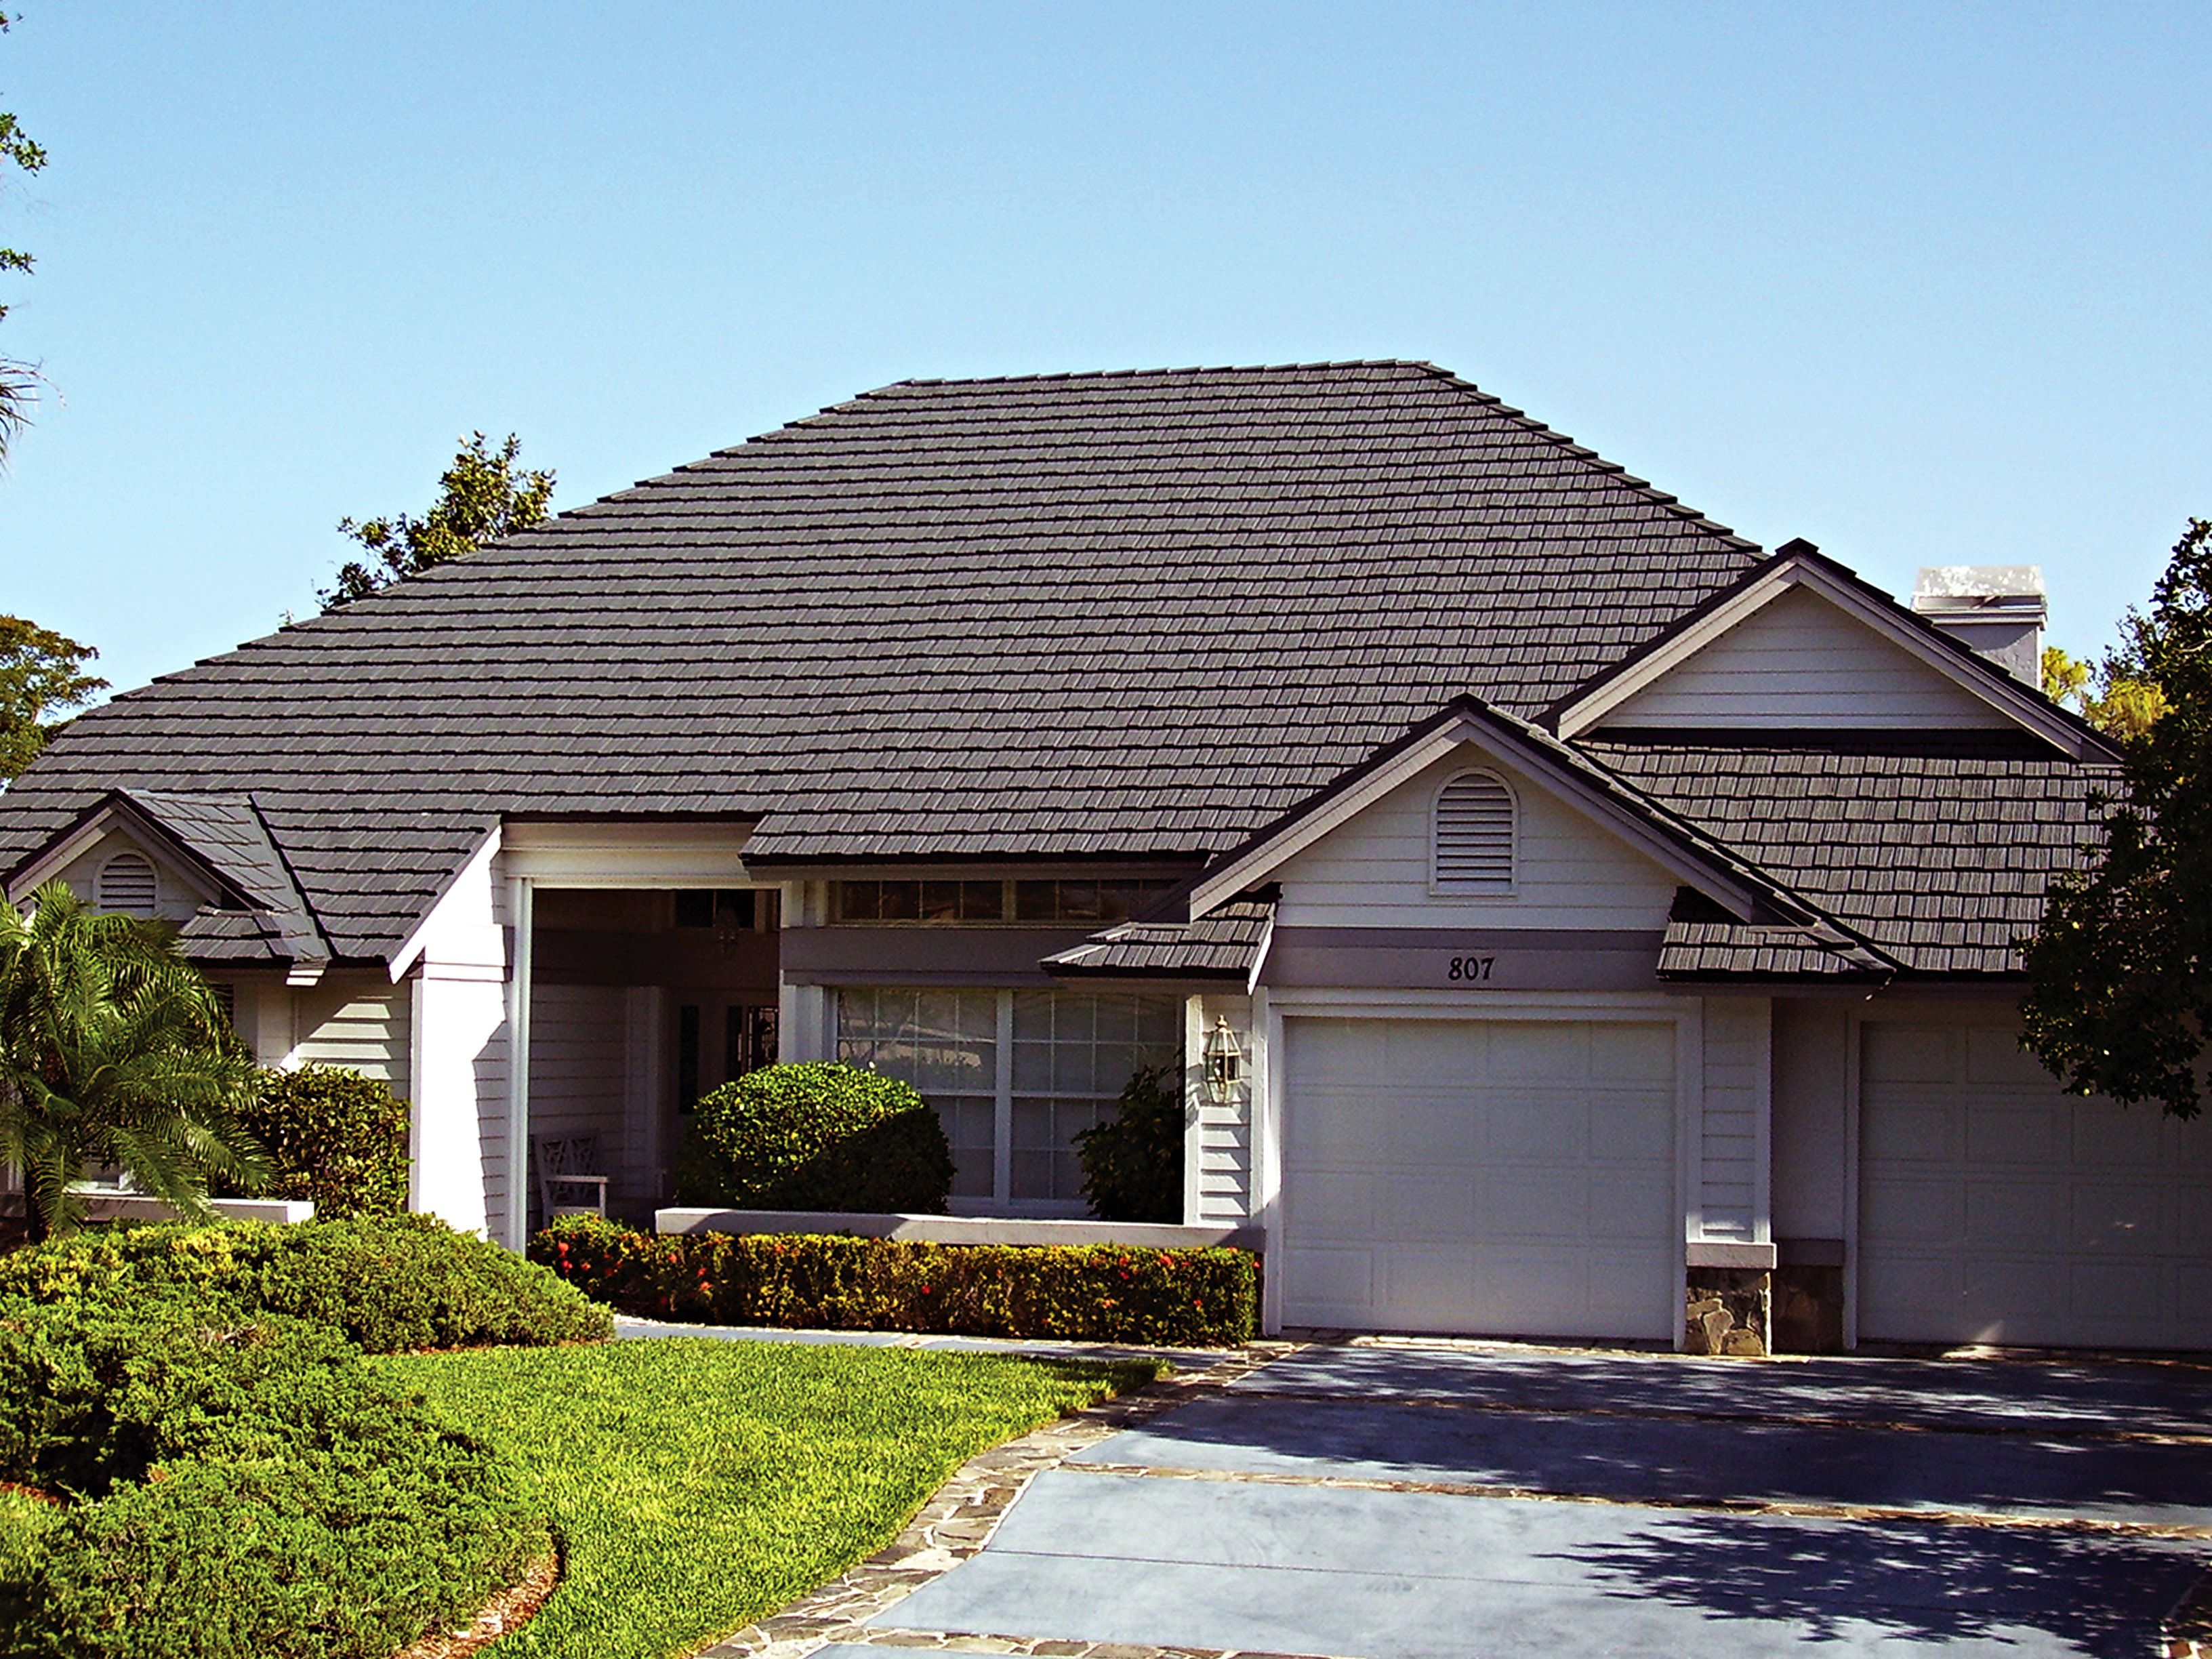 A Beautiful Metal Roof Metal Roofing Systems Architectural Shingles Metal Roof Tiles